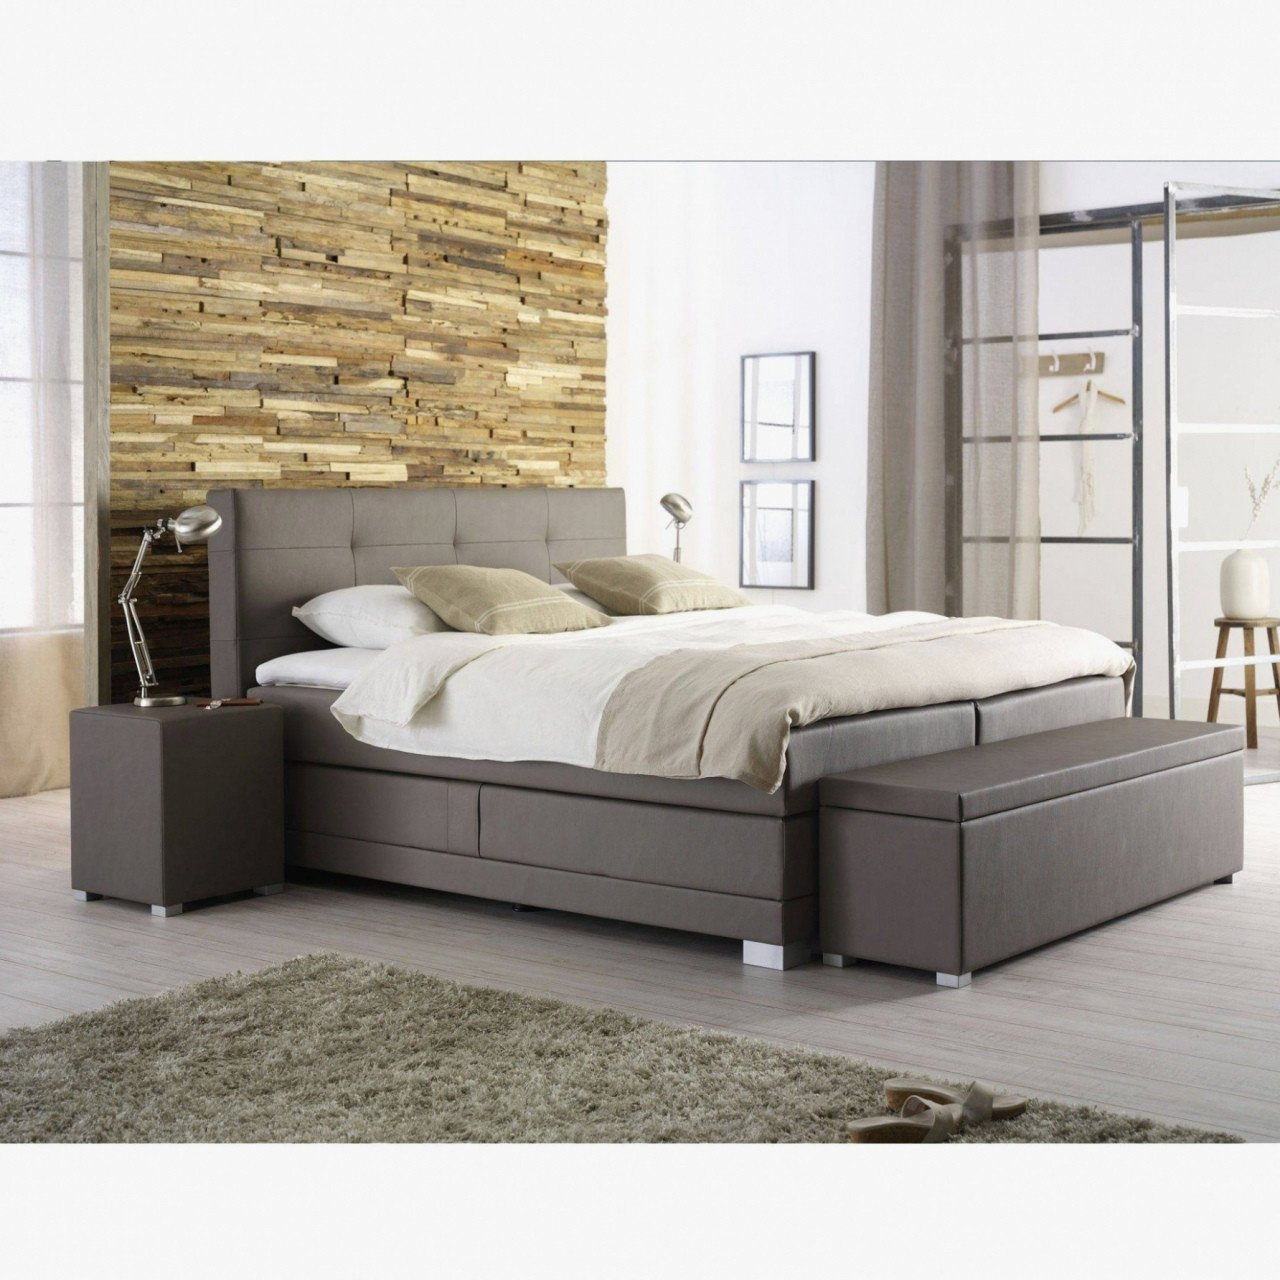 King Size Bedroom Ideas Beautiful Bed with Drawers Under — Procura Home Blog